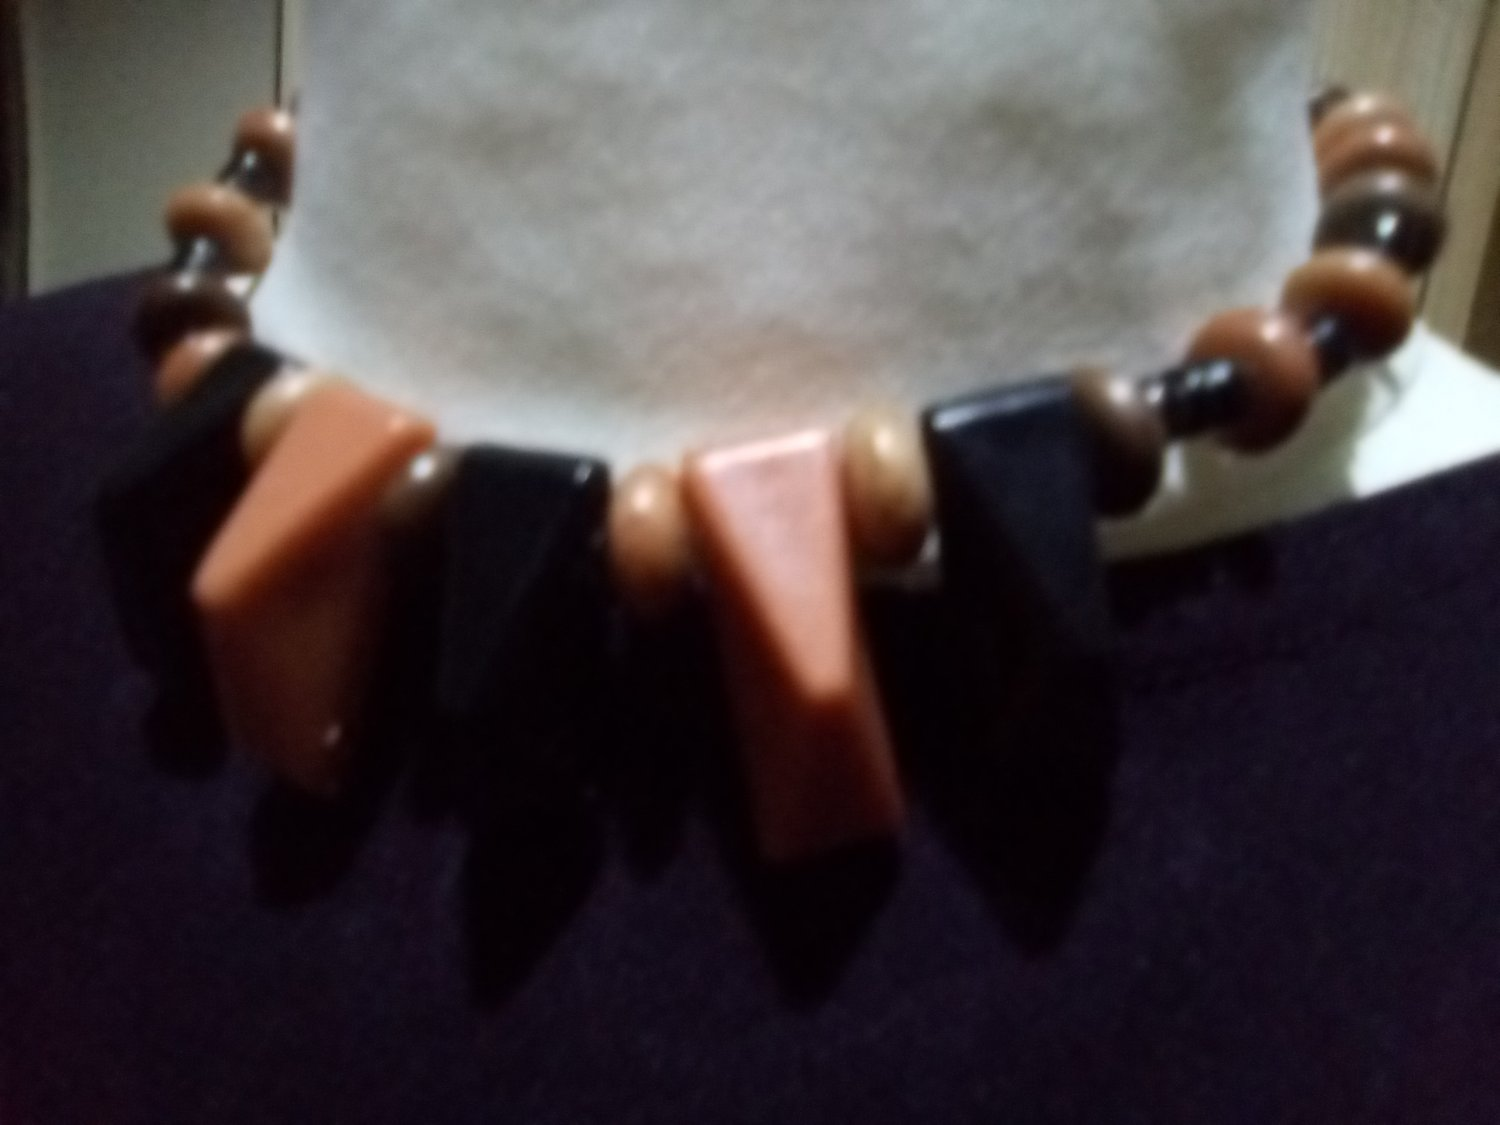 Brown plastic necklace with shaped beads c.1970s